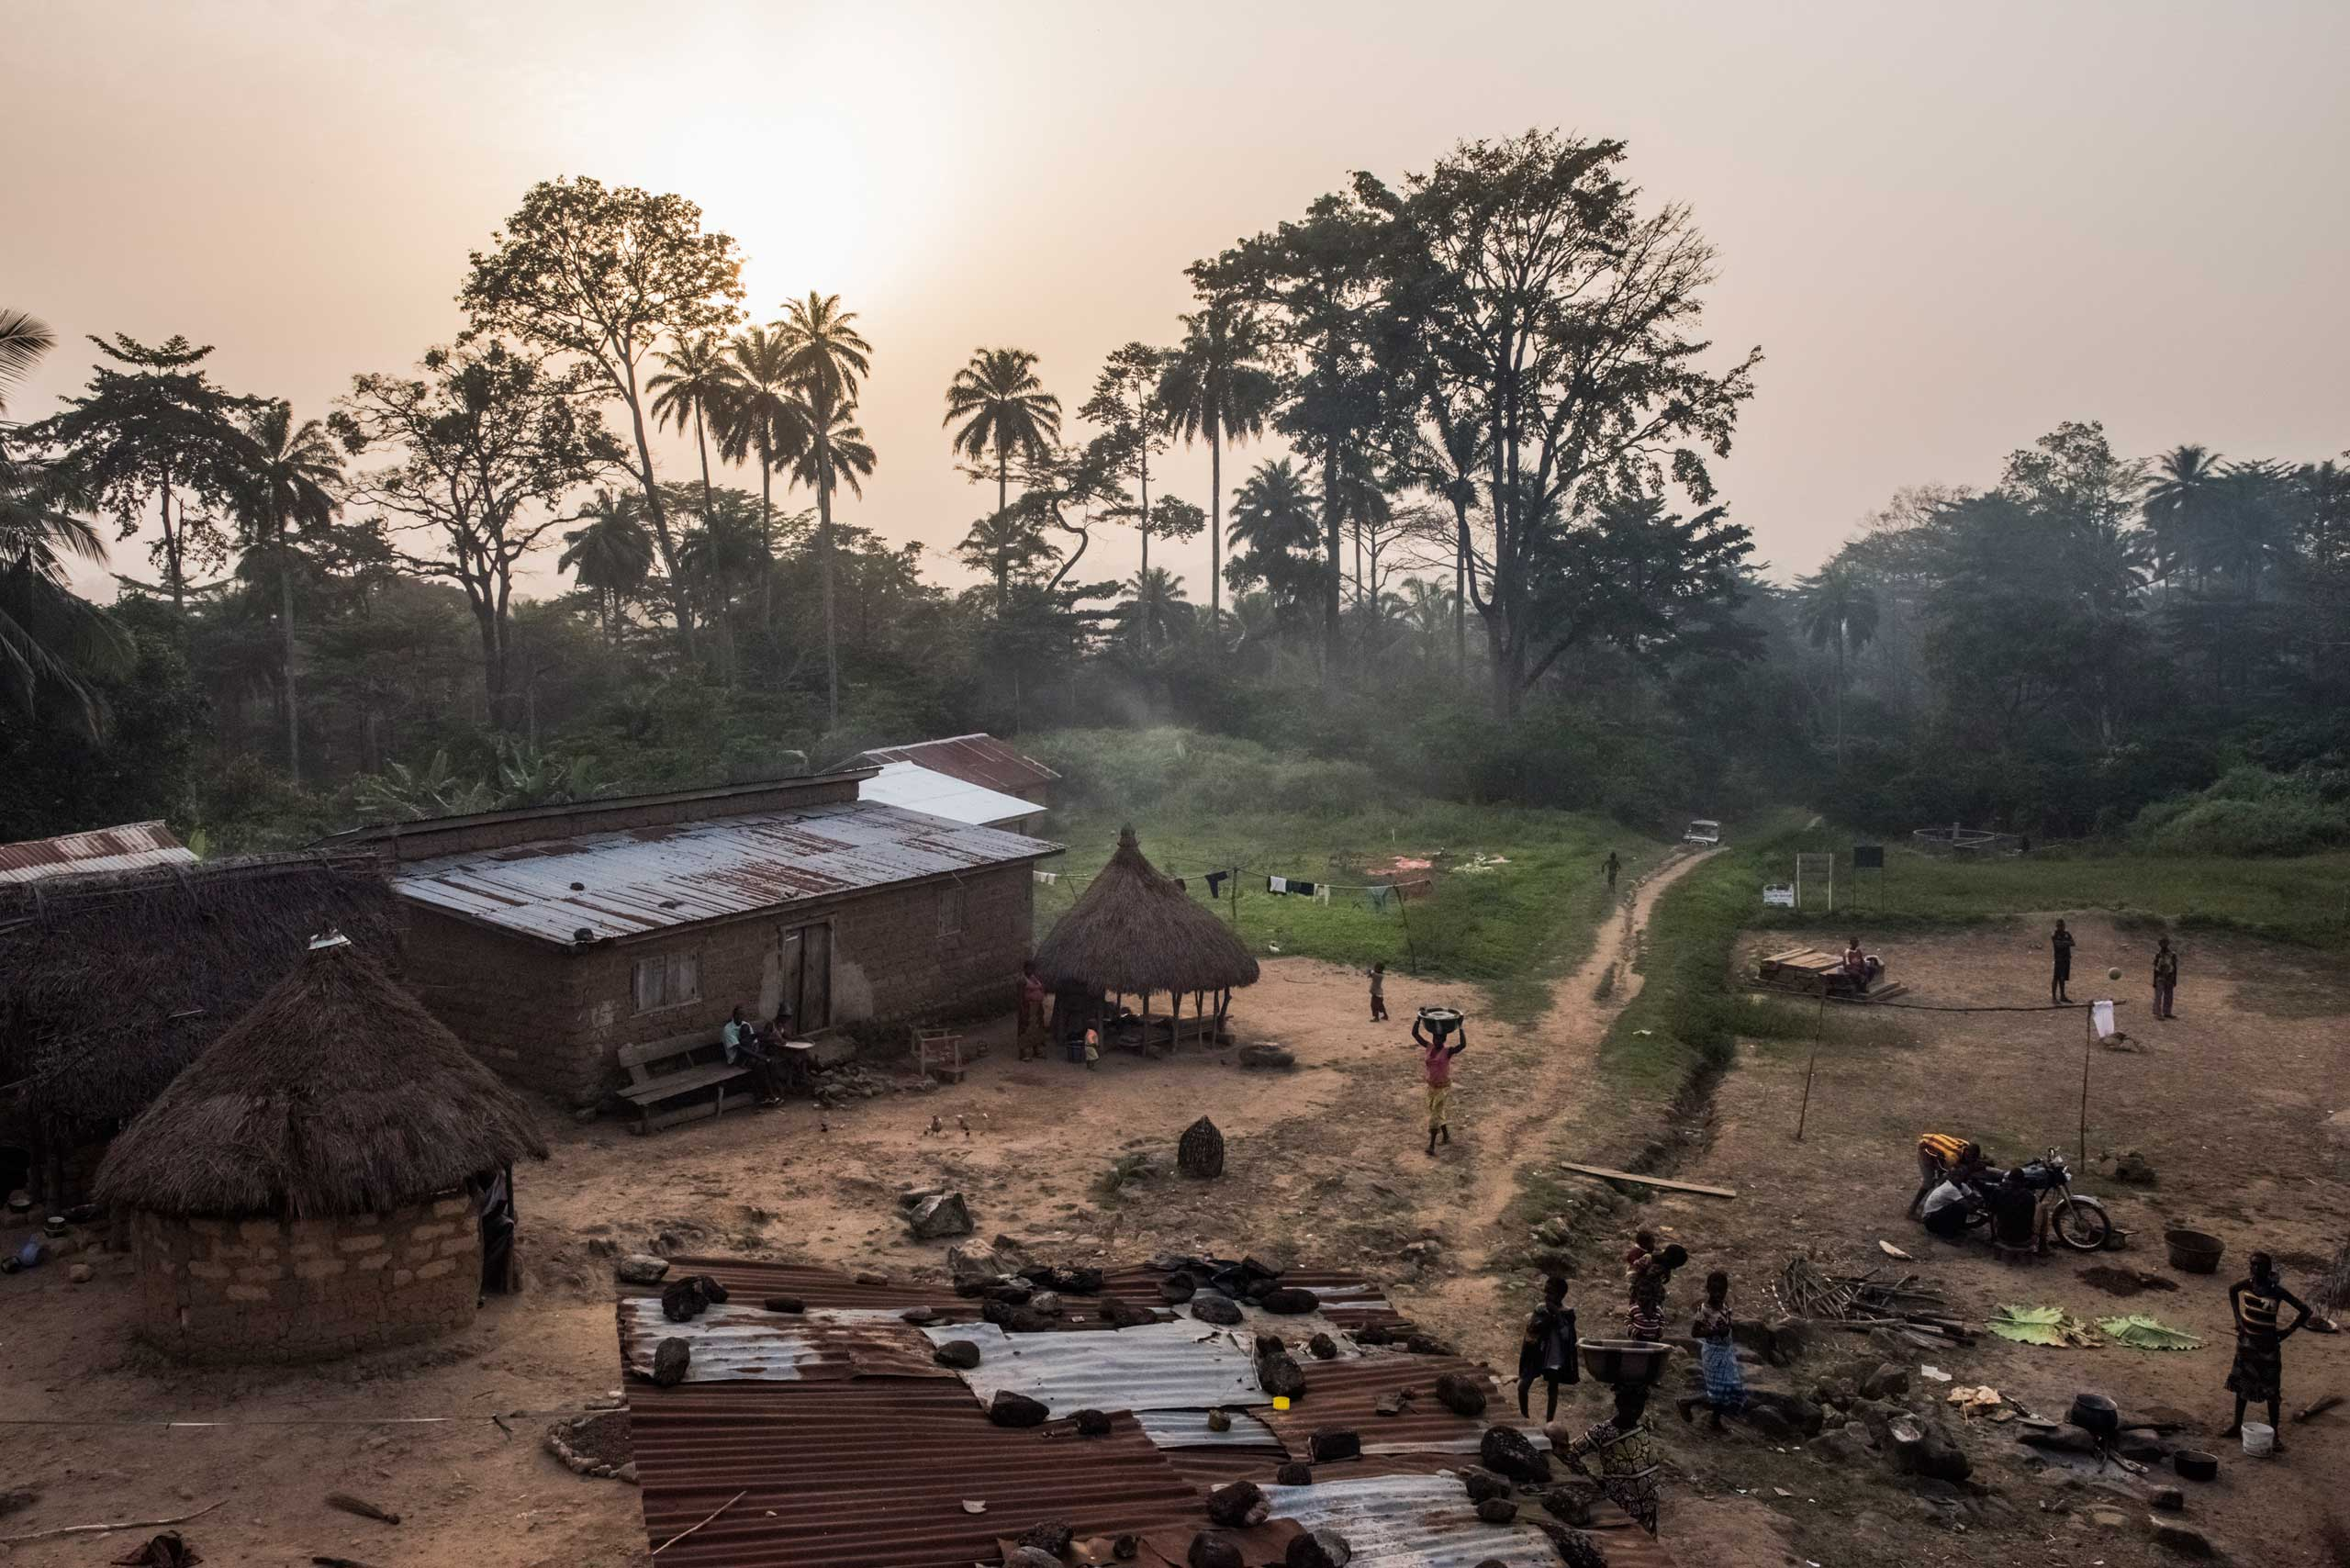 The New York Times: How Ebola Roared BackResidents set in for the evening in the village of Meliandou, where a 1-year-old boy named Emile Ouamouno came down with symptoms consistent with Ebola and died in late Dec. 2013, in Guinea, Dec. 14, 2014. Emile is considered Patient Zero in the current outbreak across Guinea, Sierra Leone and Liberia.